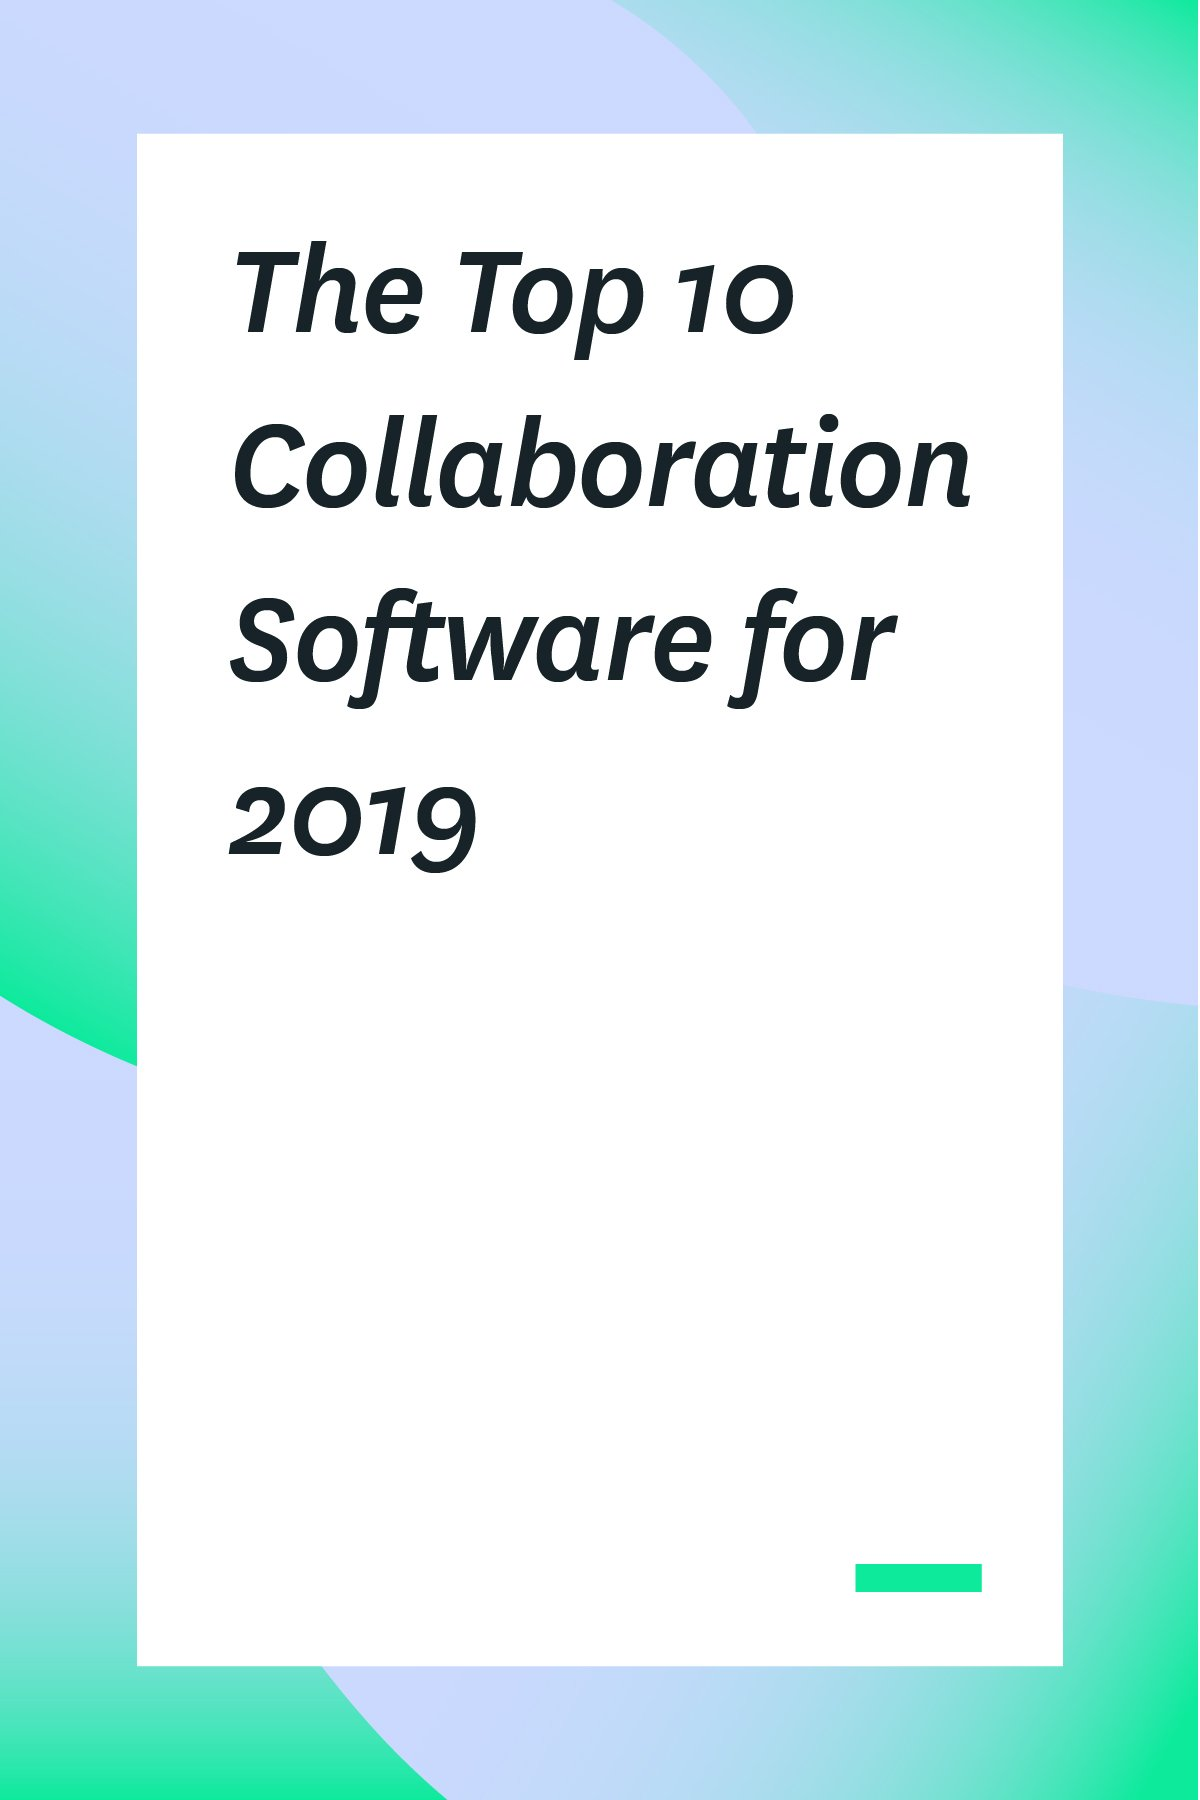 Looking for a better way to communicate with your team? Start with one of these collaboration software options. Once you have the proper collaboration tool, you'll be amazed how quickly everything falls into place.